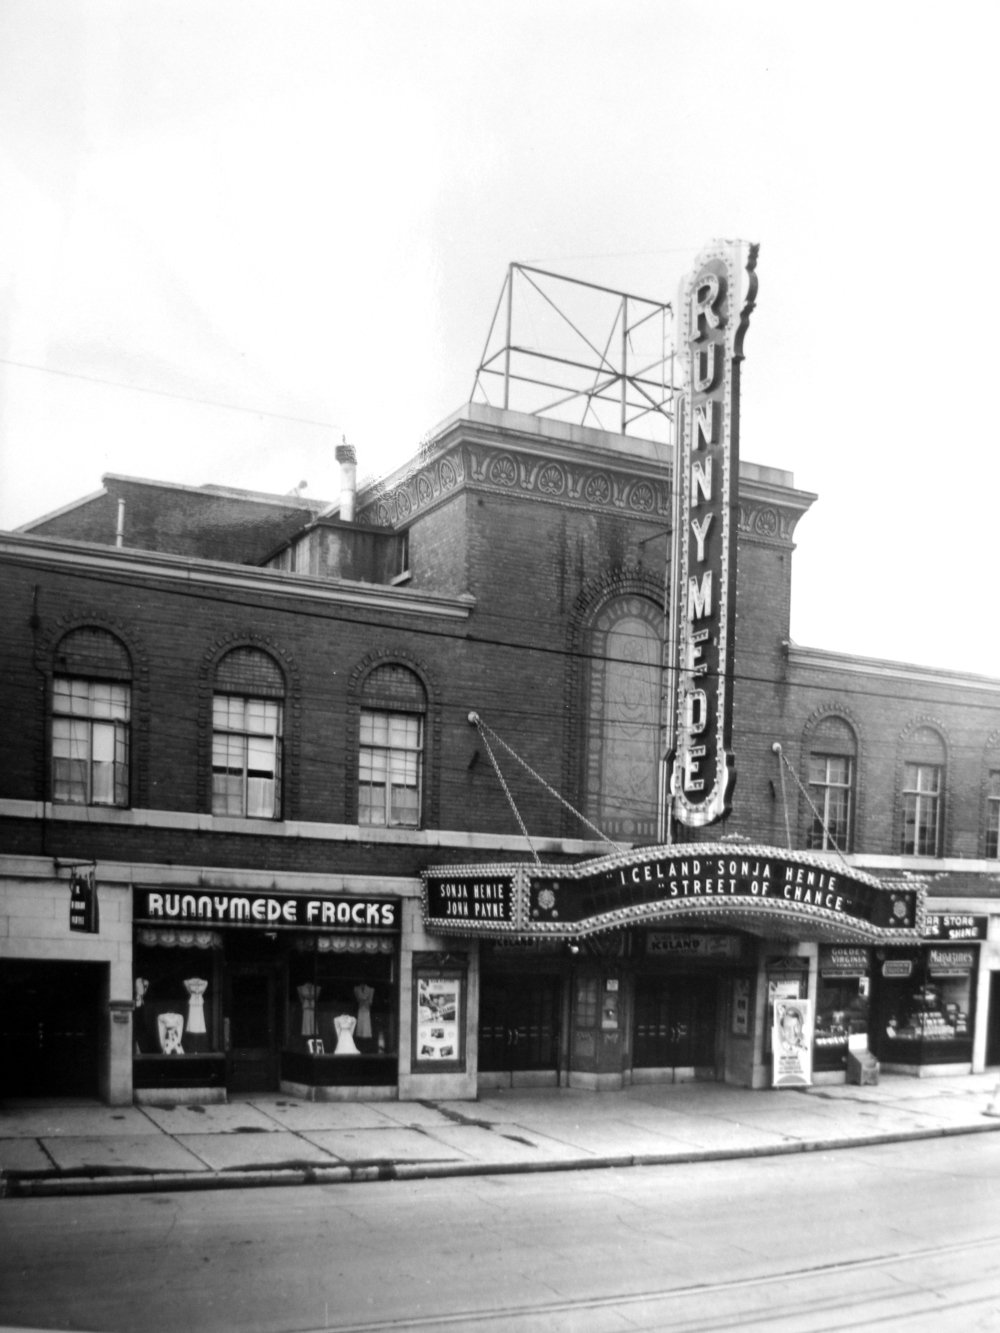 Runnymede Theatre, 1930s. City of Toronto Archives, Series 1278, File 147.